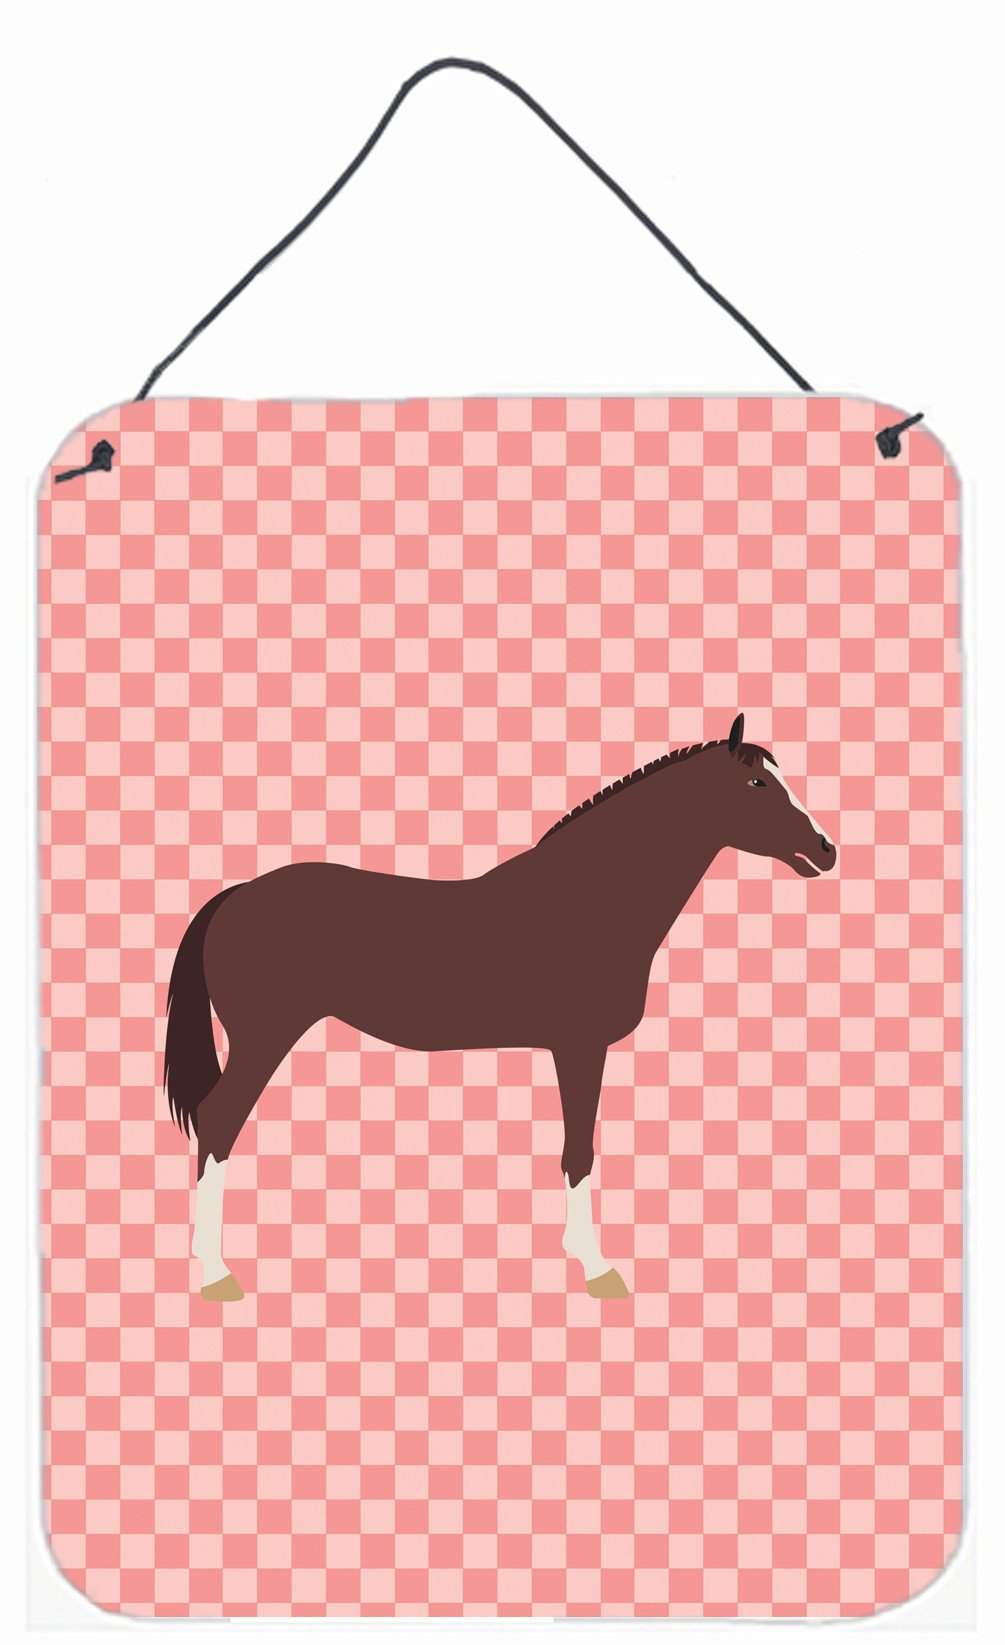 English Thoroughbred Horse Pink Check Wall or Door Hanging Prints BB7913DS1216 by Caroline's Treasures